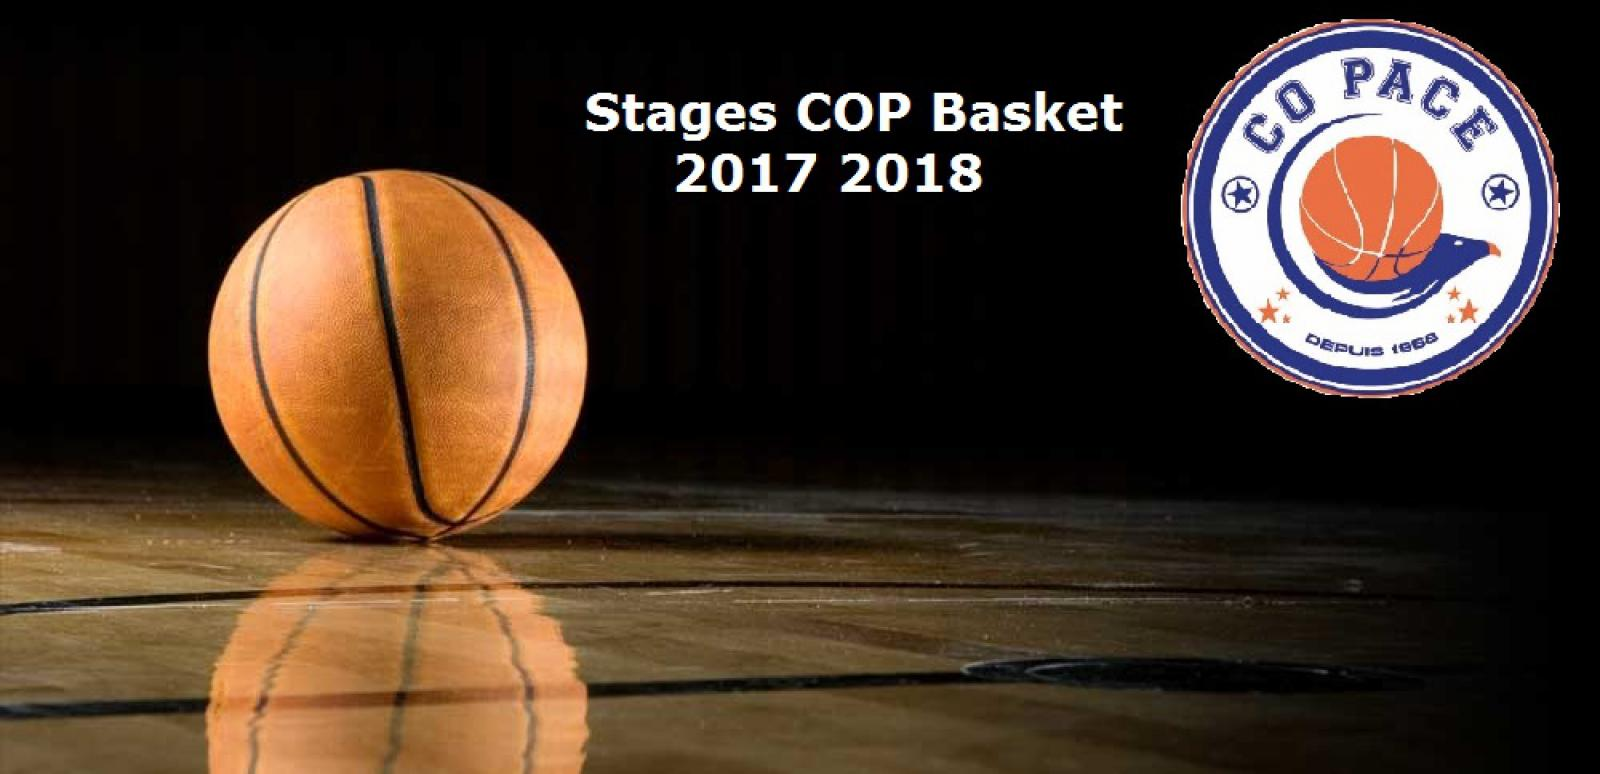 stages COP Basket 2017 2018.jpg